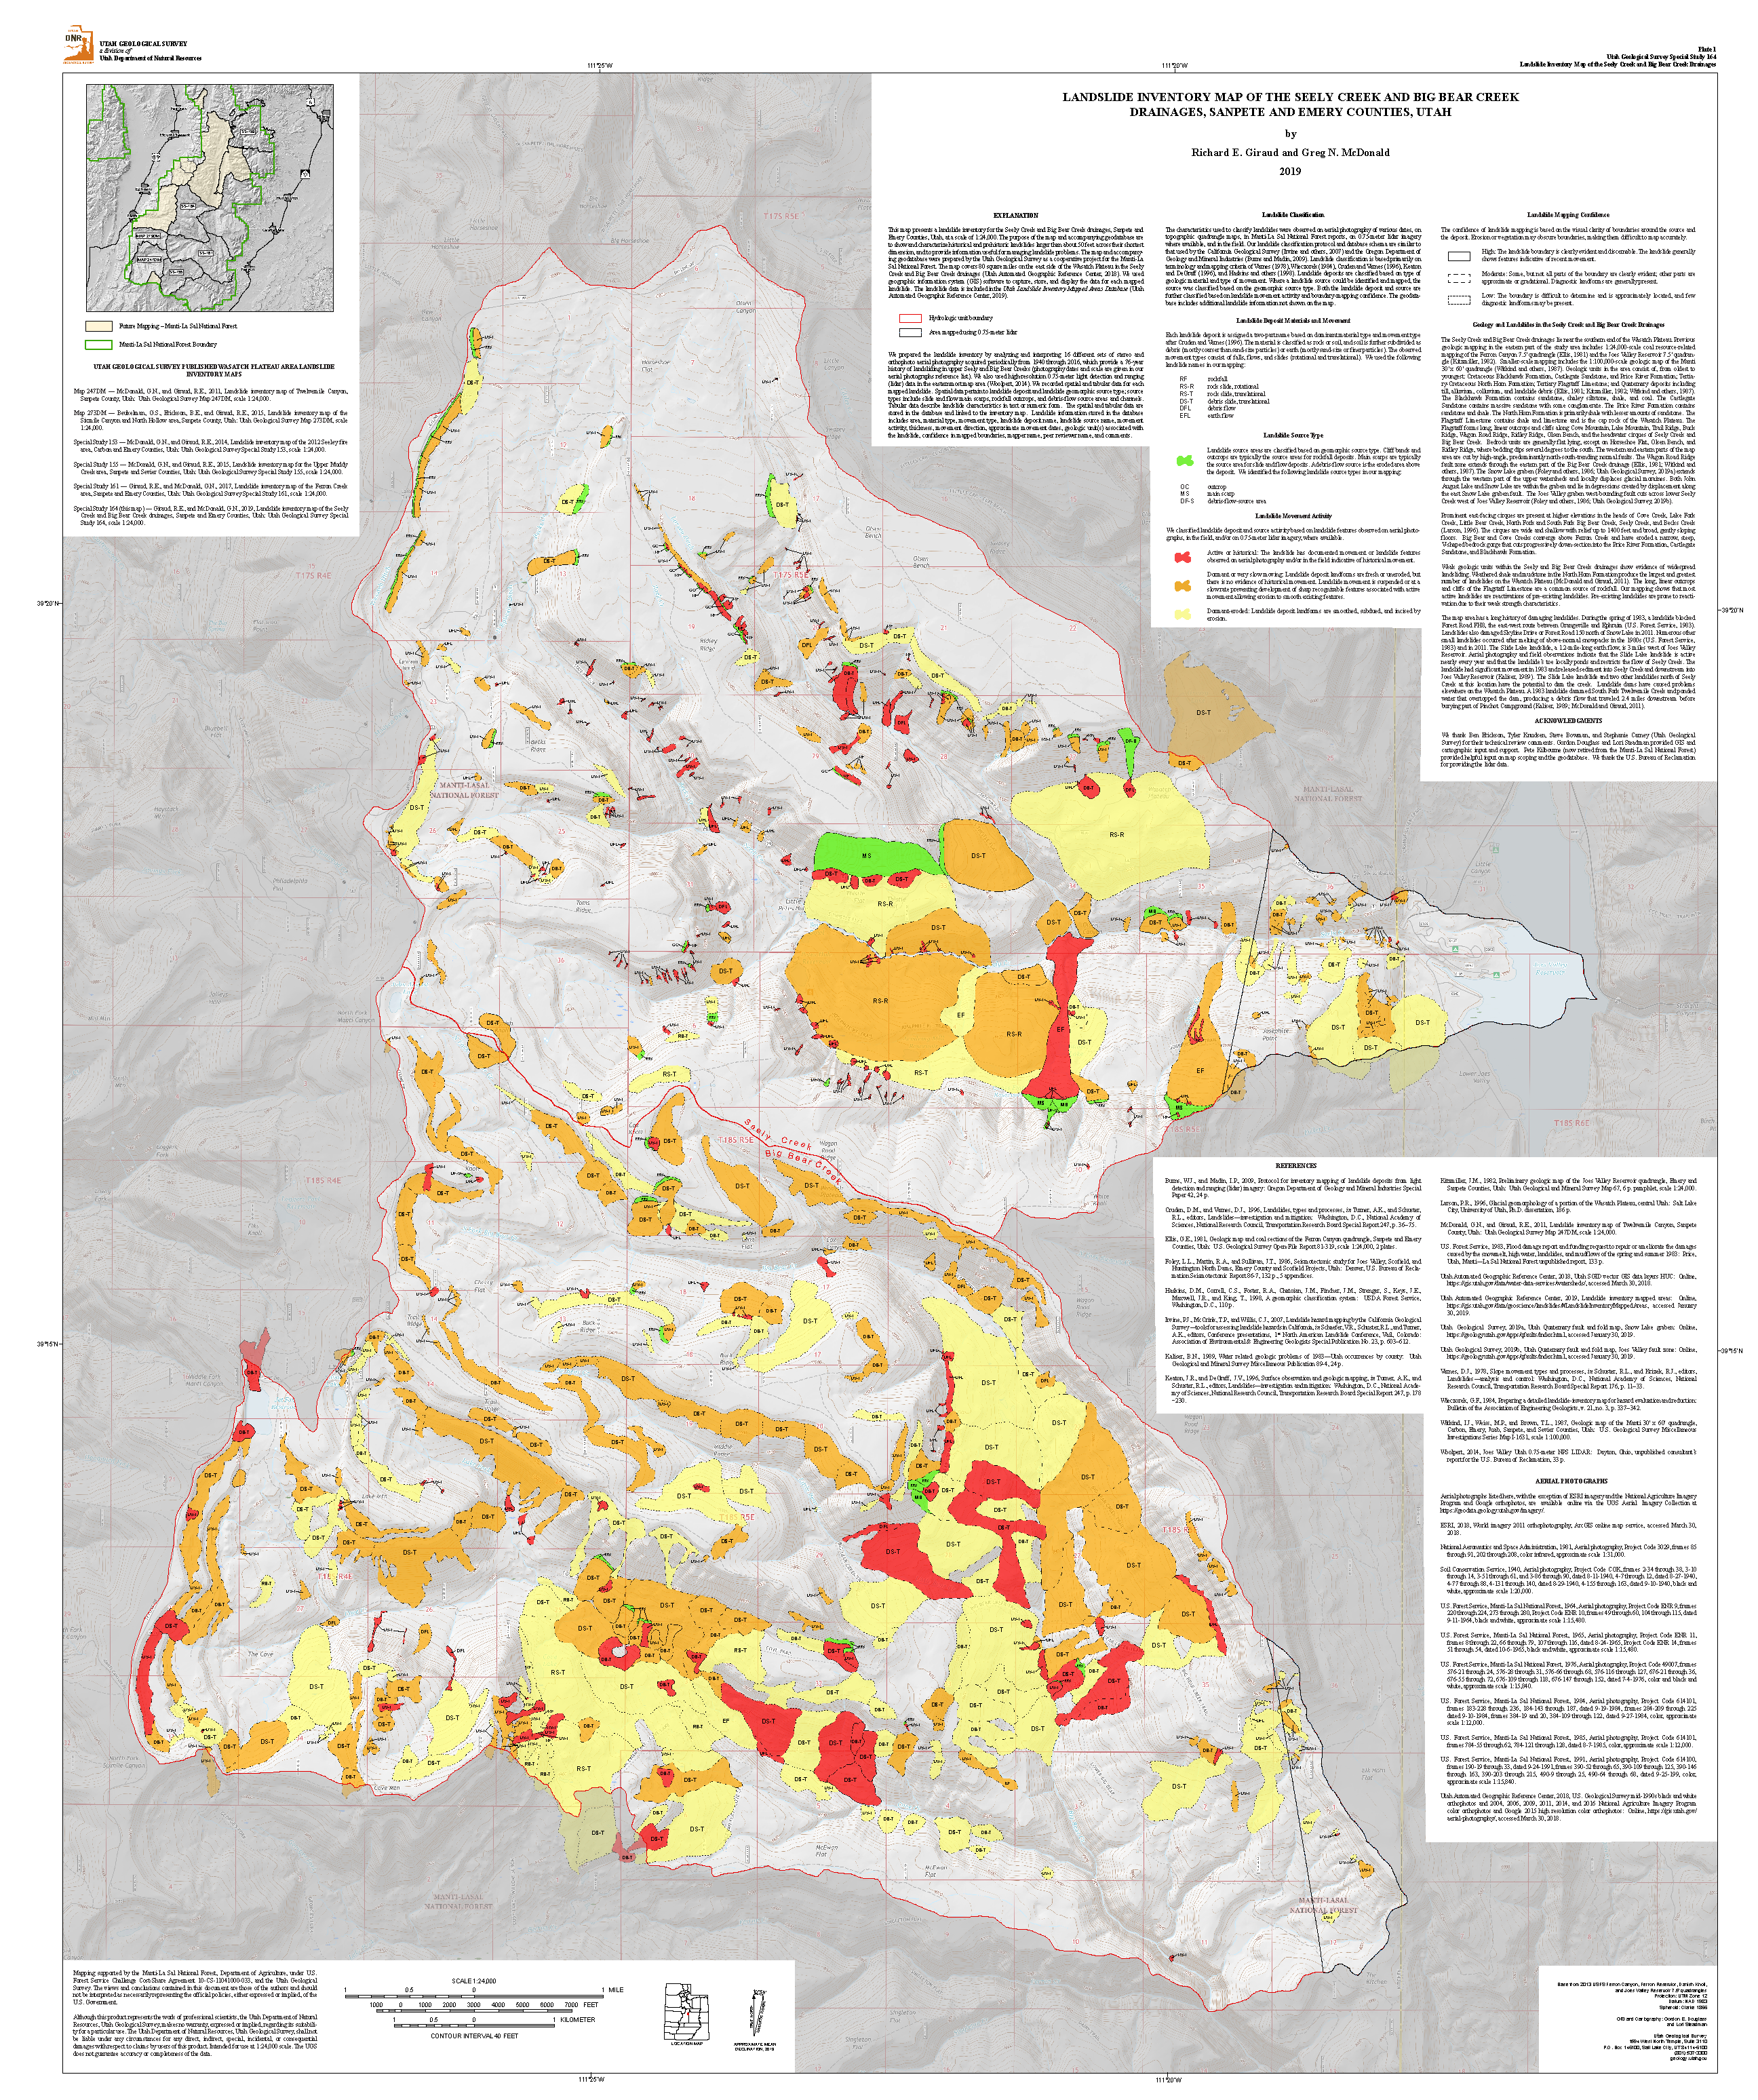 Hazards Maps – Utah Geological Survey on seismic risk map, new york state seismic map, seismic category map, ibc seismic classification map, us seismicity map, us wind map, us ground snow load map, us soils map, global seismic hazard map, level 4 seismic zones map, us frost depth map, california seismic hazard zone map, us heating degree days map, ibc zip code map, us rainfall intensity map, seismic activity map, us altitude map, gsa seismic map, 10 fema zones map, earthquake map,